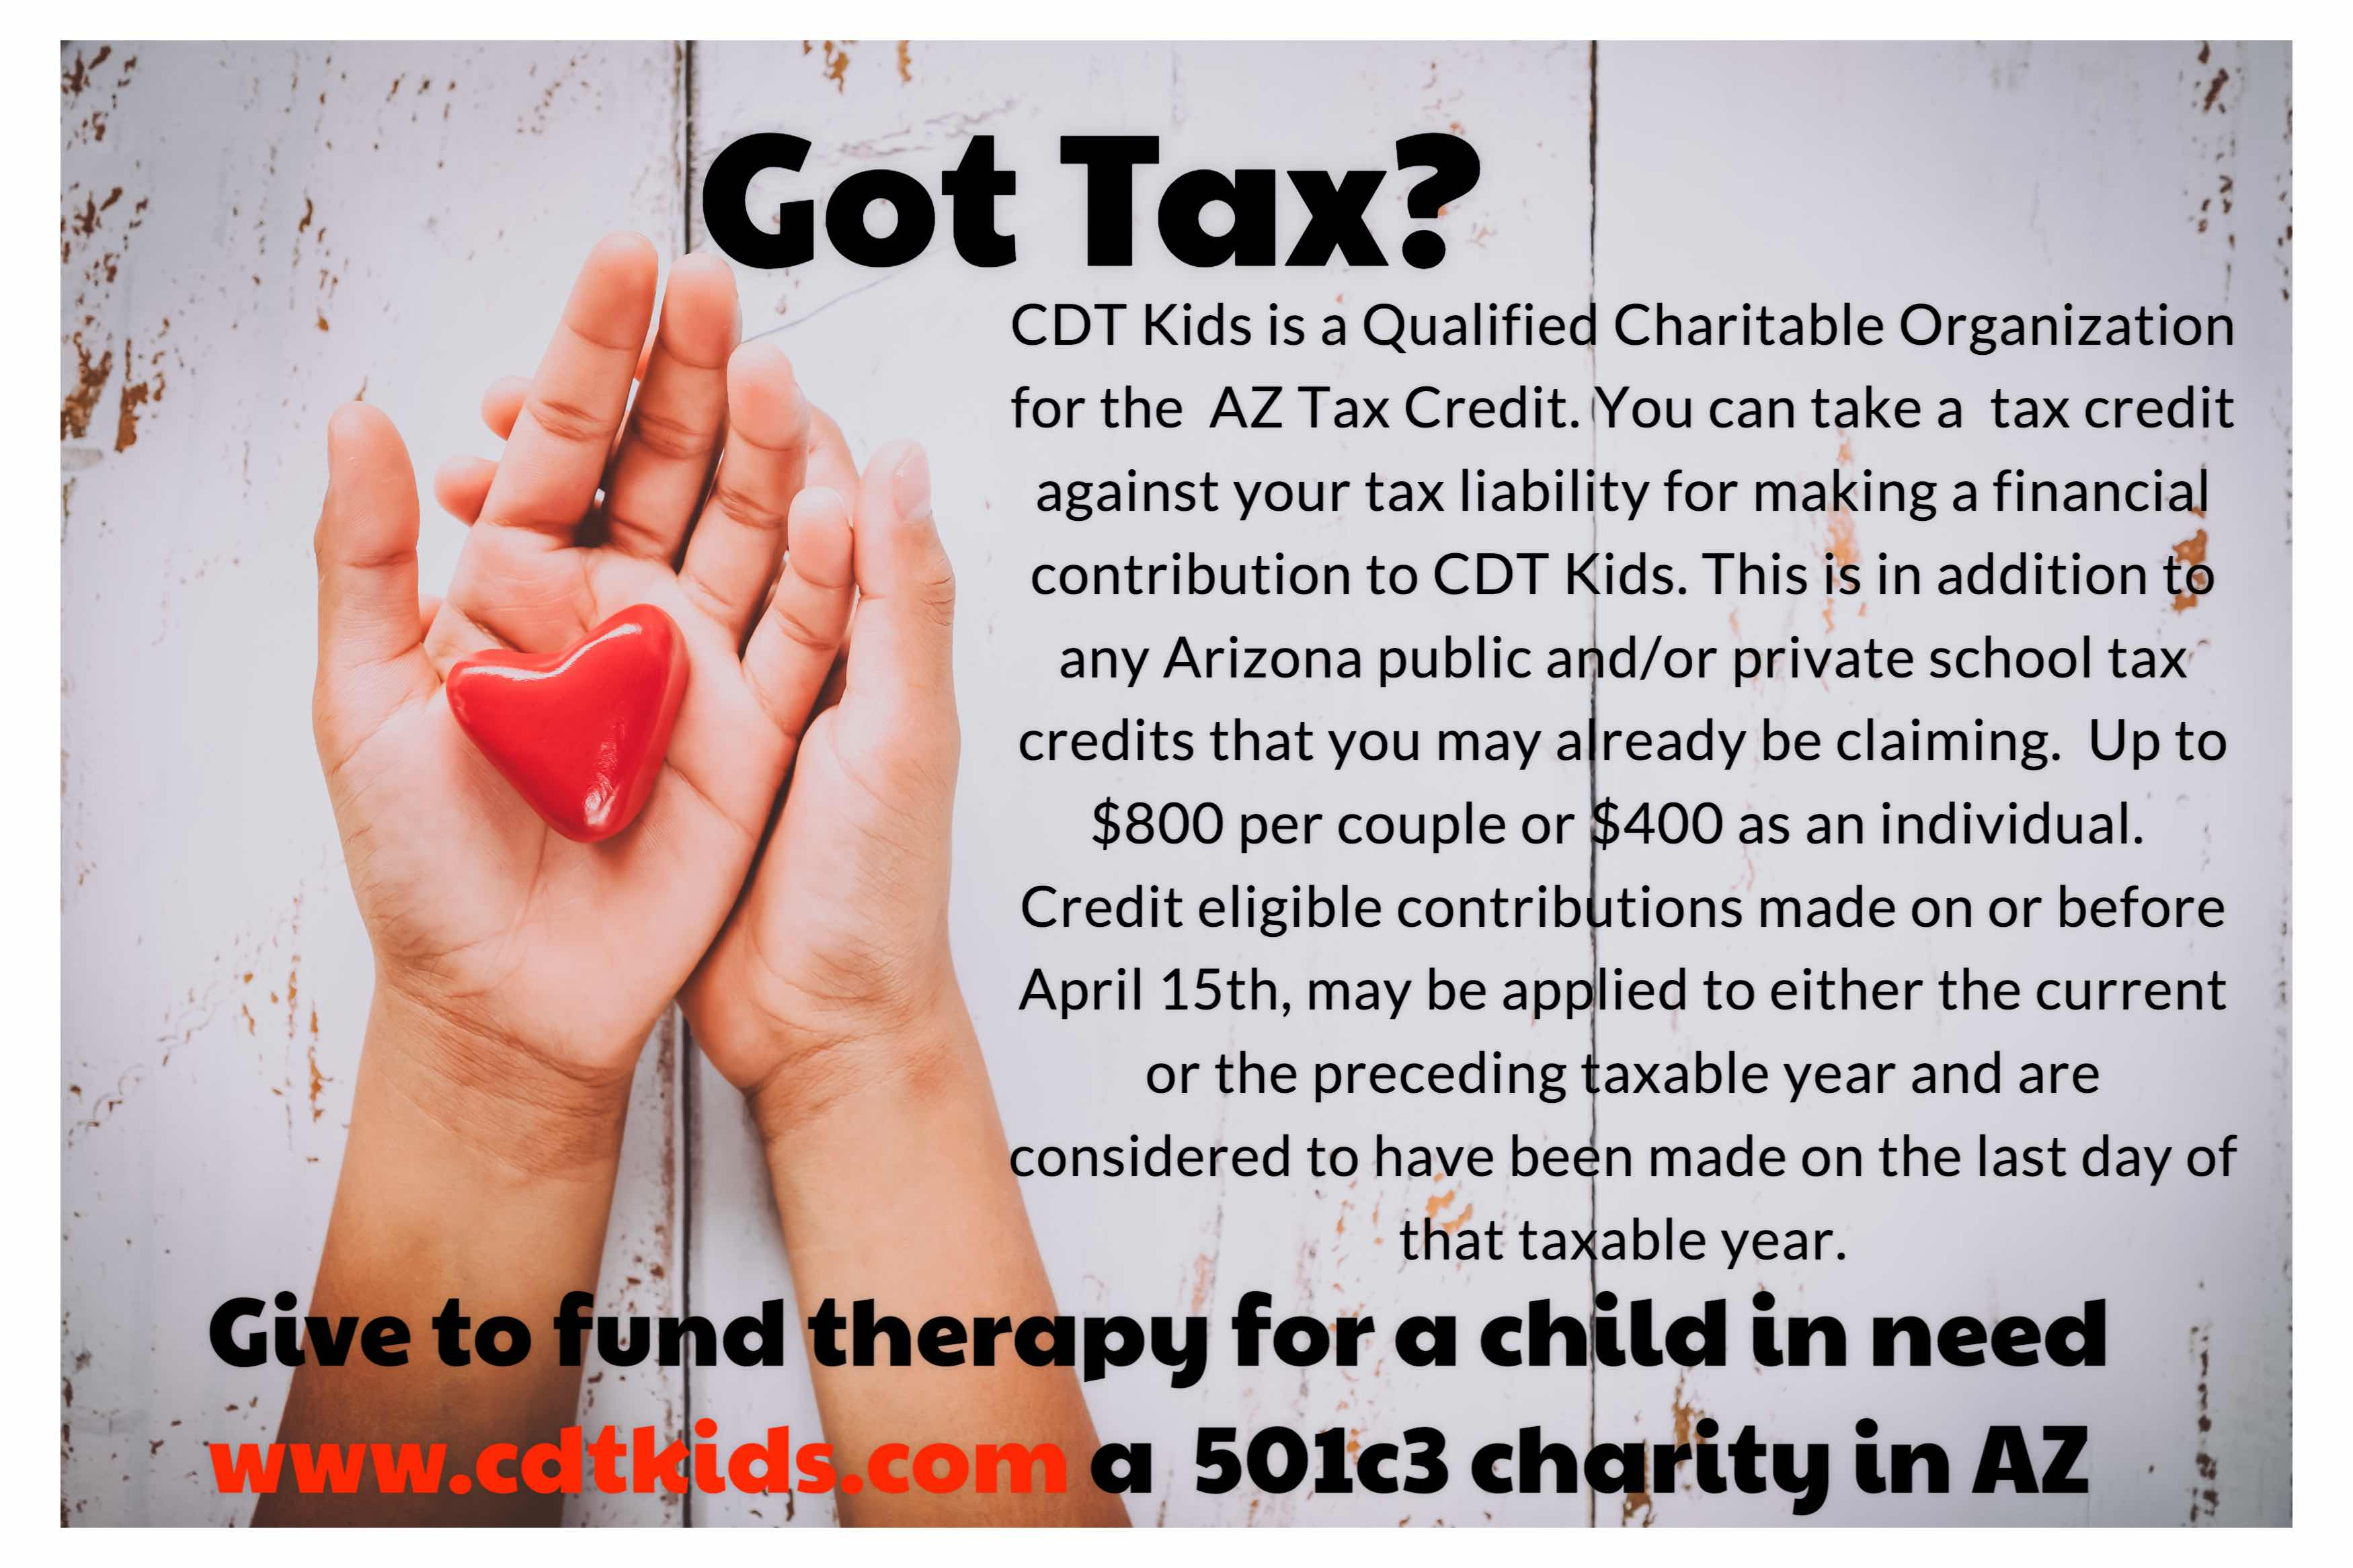 cdt kids tax credit